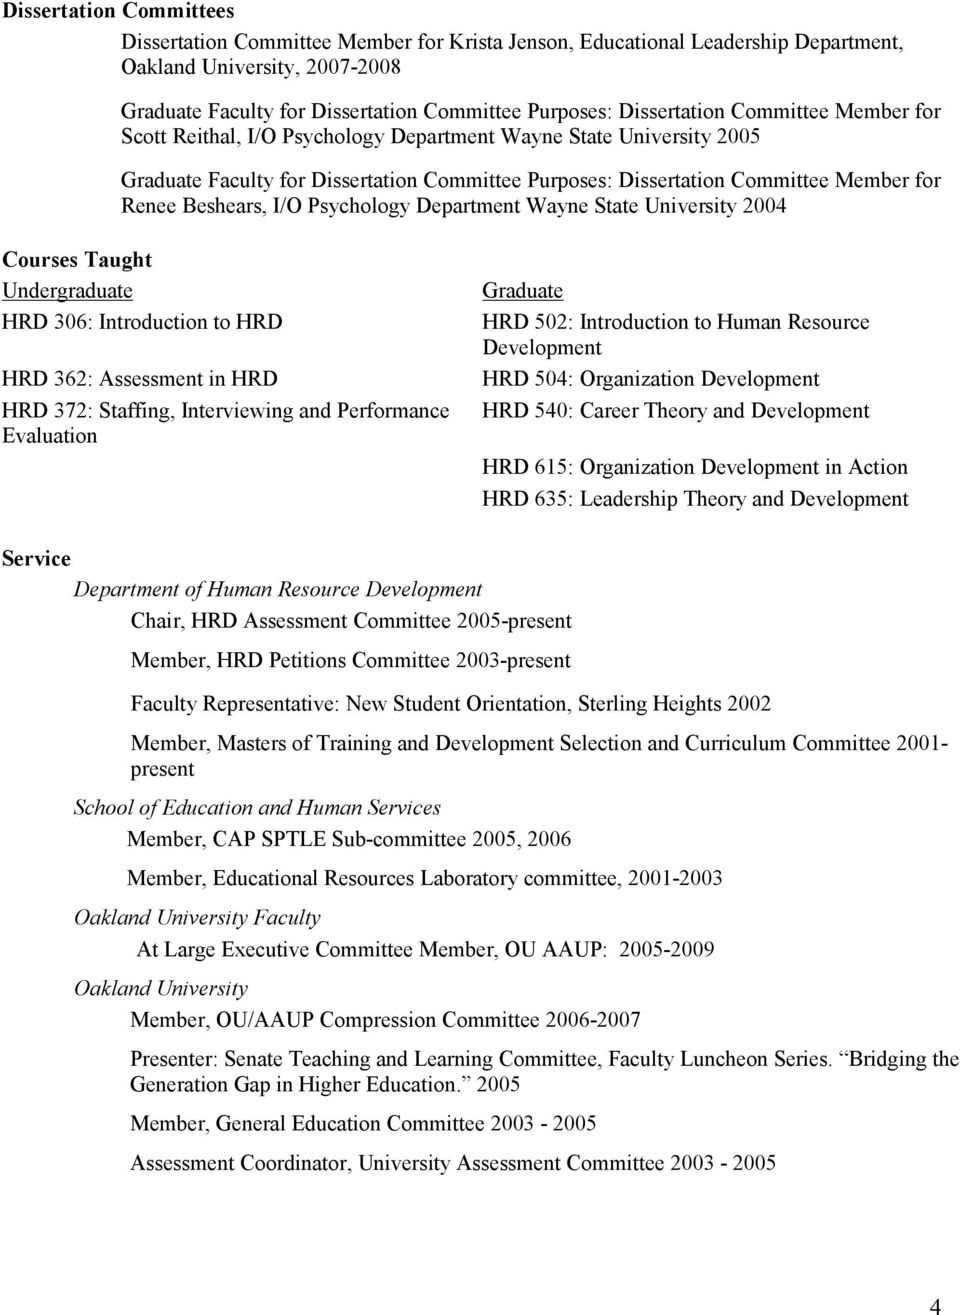 Beshears, I/O Psychology Department Wayne State University 2004 Courses Taught Undergraduate HRD 306: Introduction to HRD HRD 362: Assessment in HRD HRD 372: Staffing, Interviewing and Performance